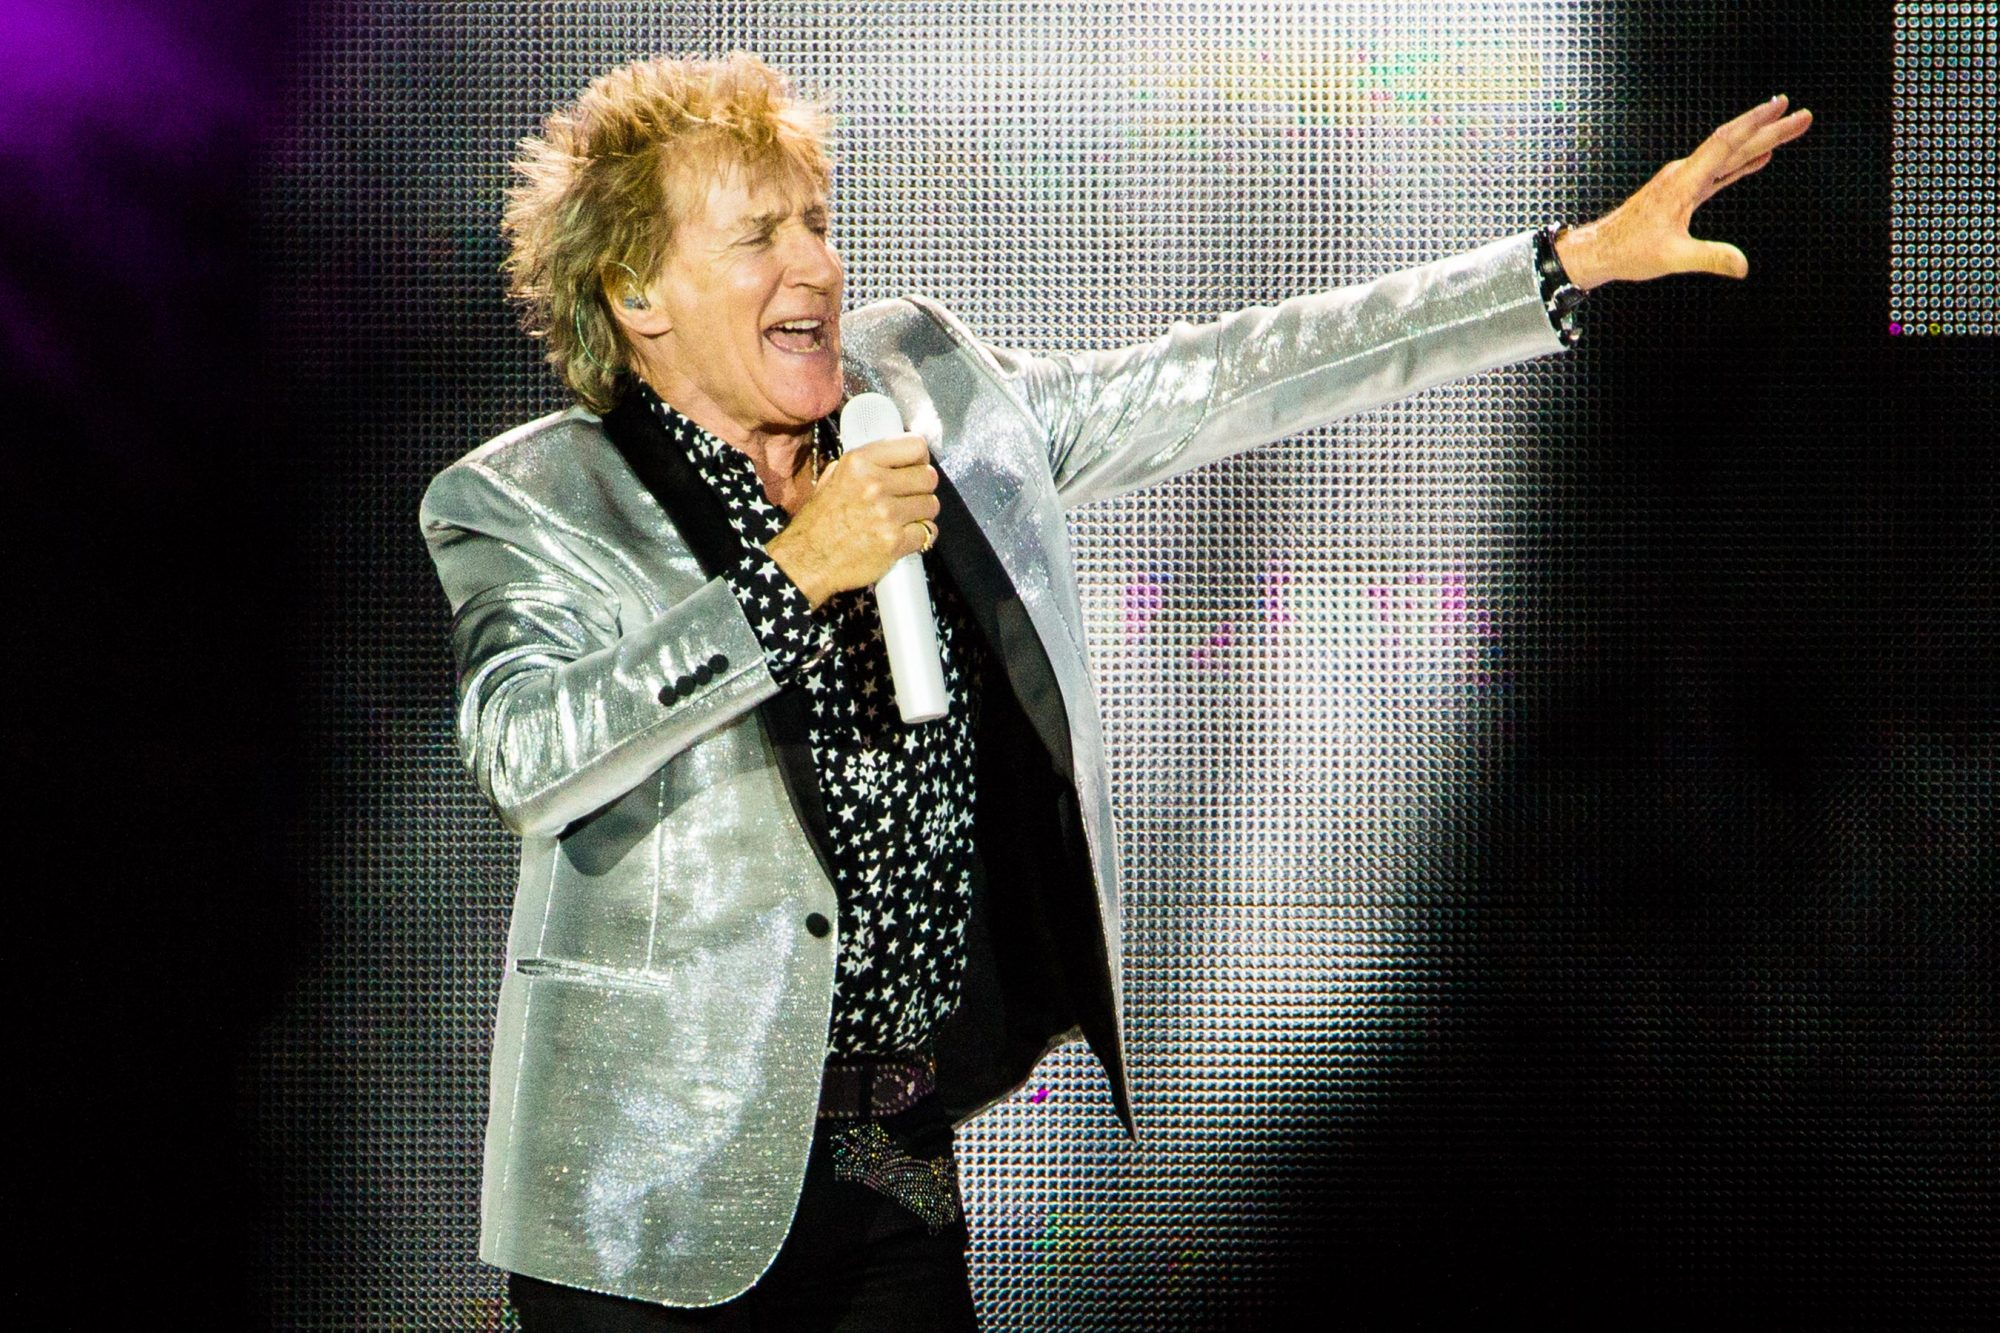 Rod Stewart Performs At The O2 Arena